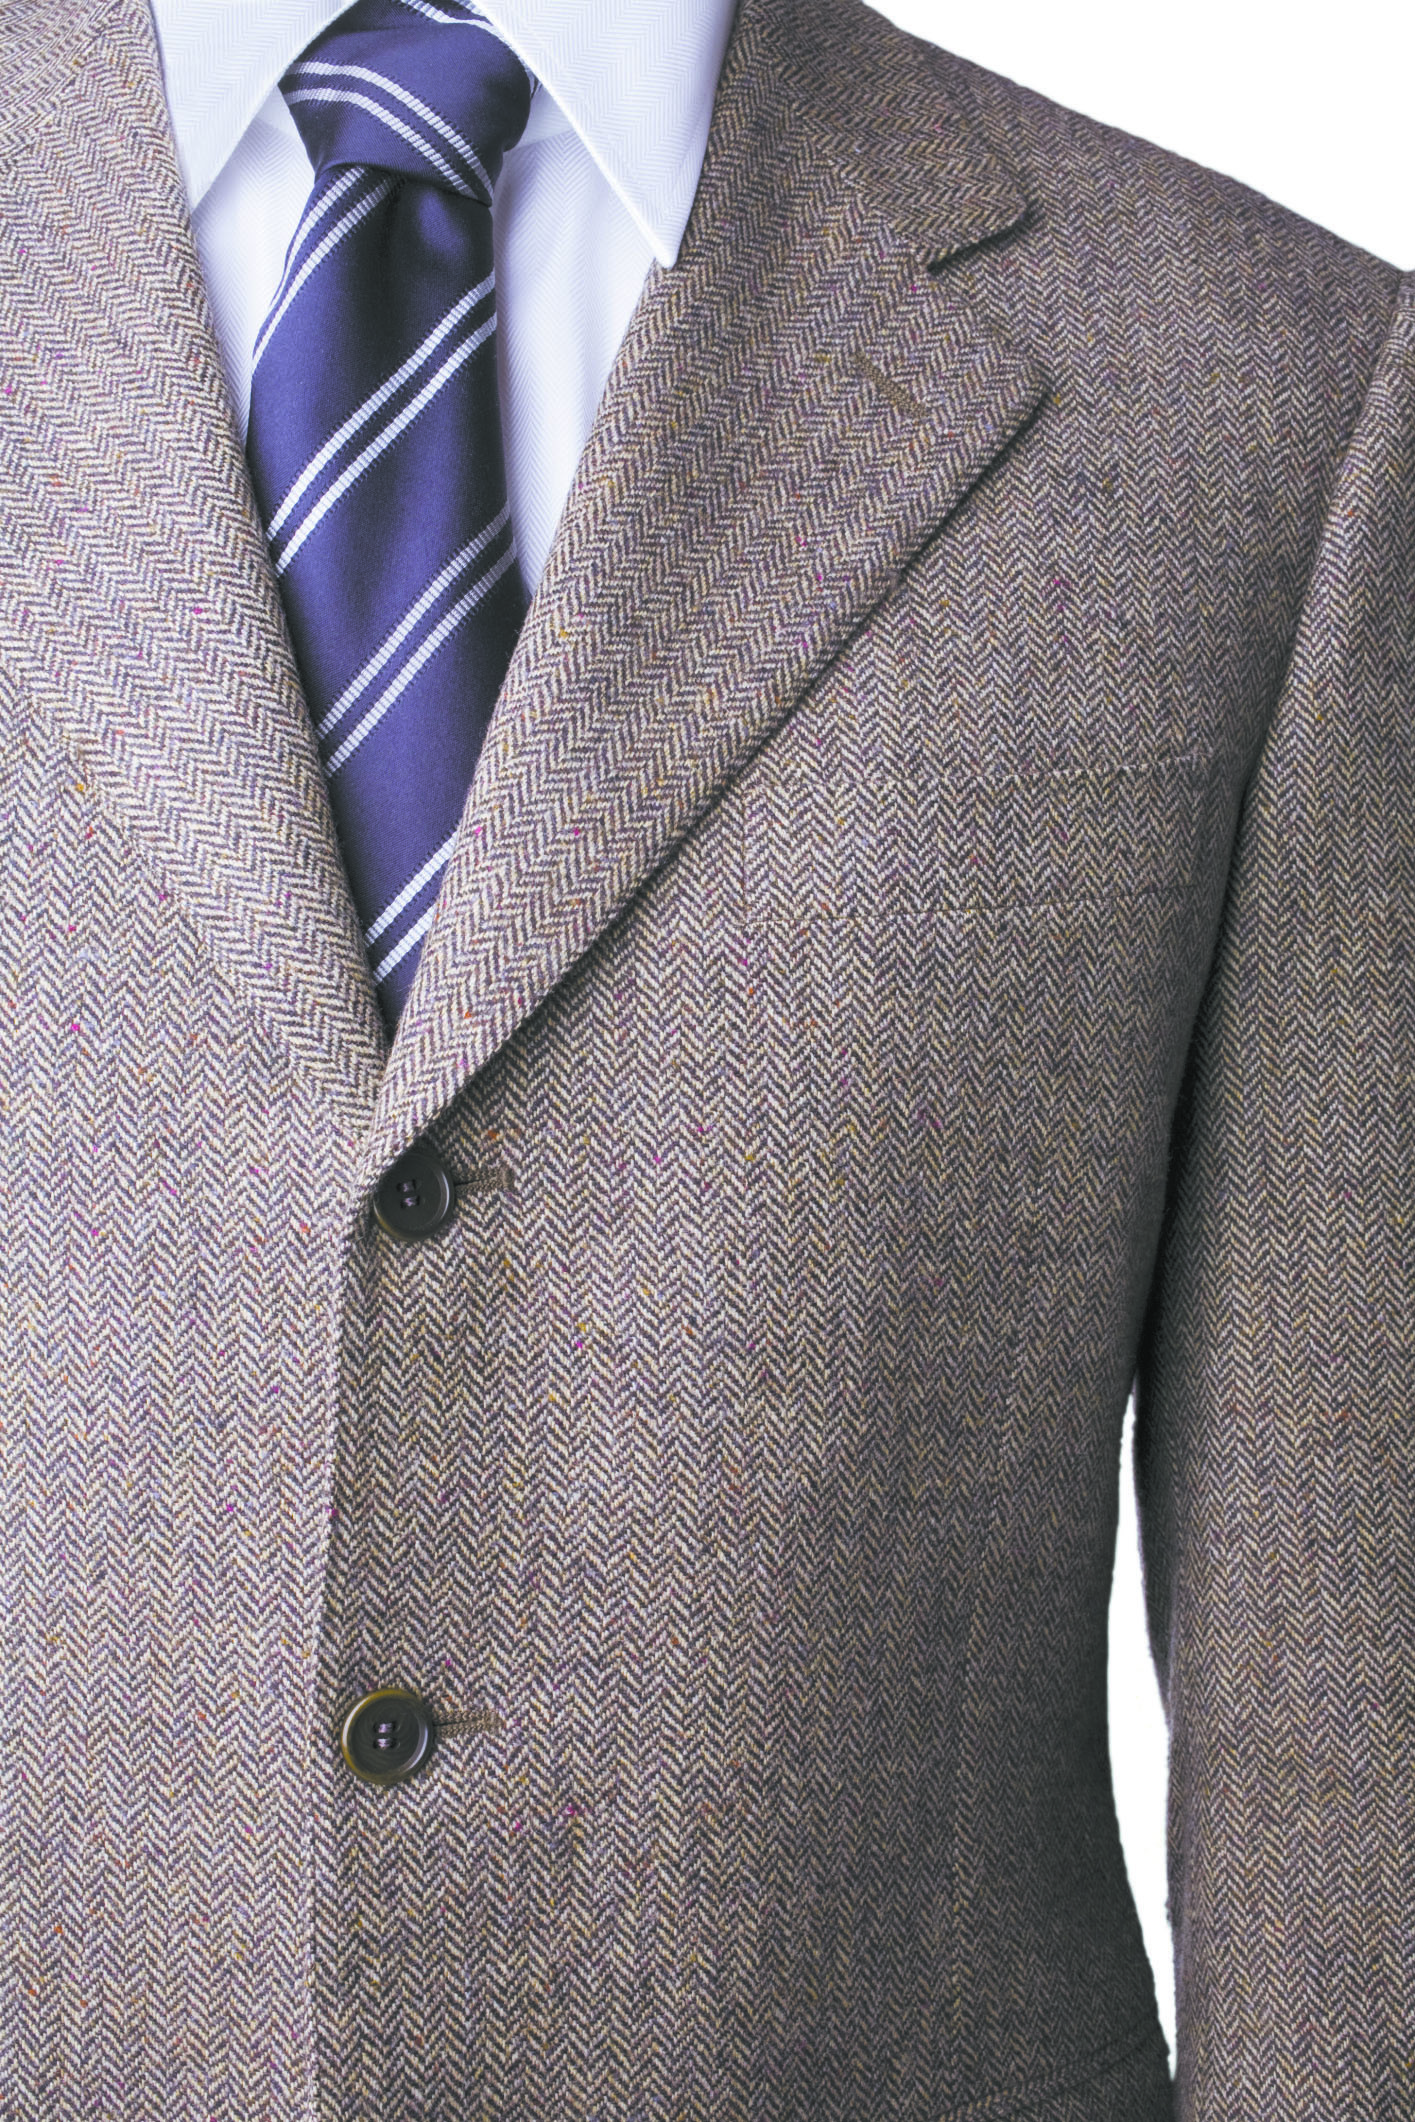 Tweed Wool blazer, shirt and tie with windsor knot